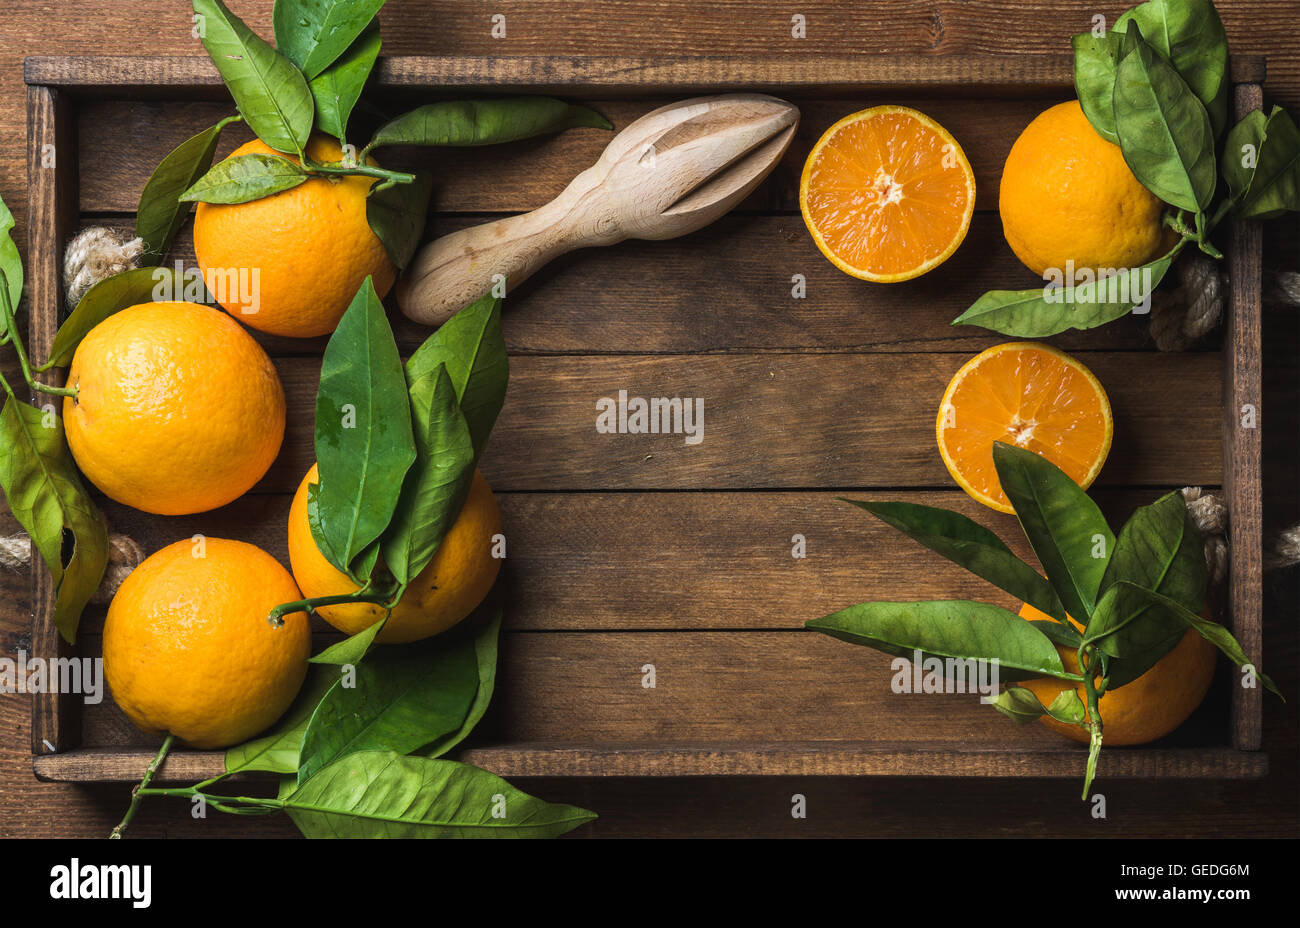 Fresh oranges with leaves in dark wooden tray over rustic background, copy space - Stock Image